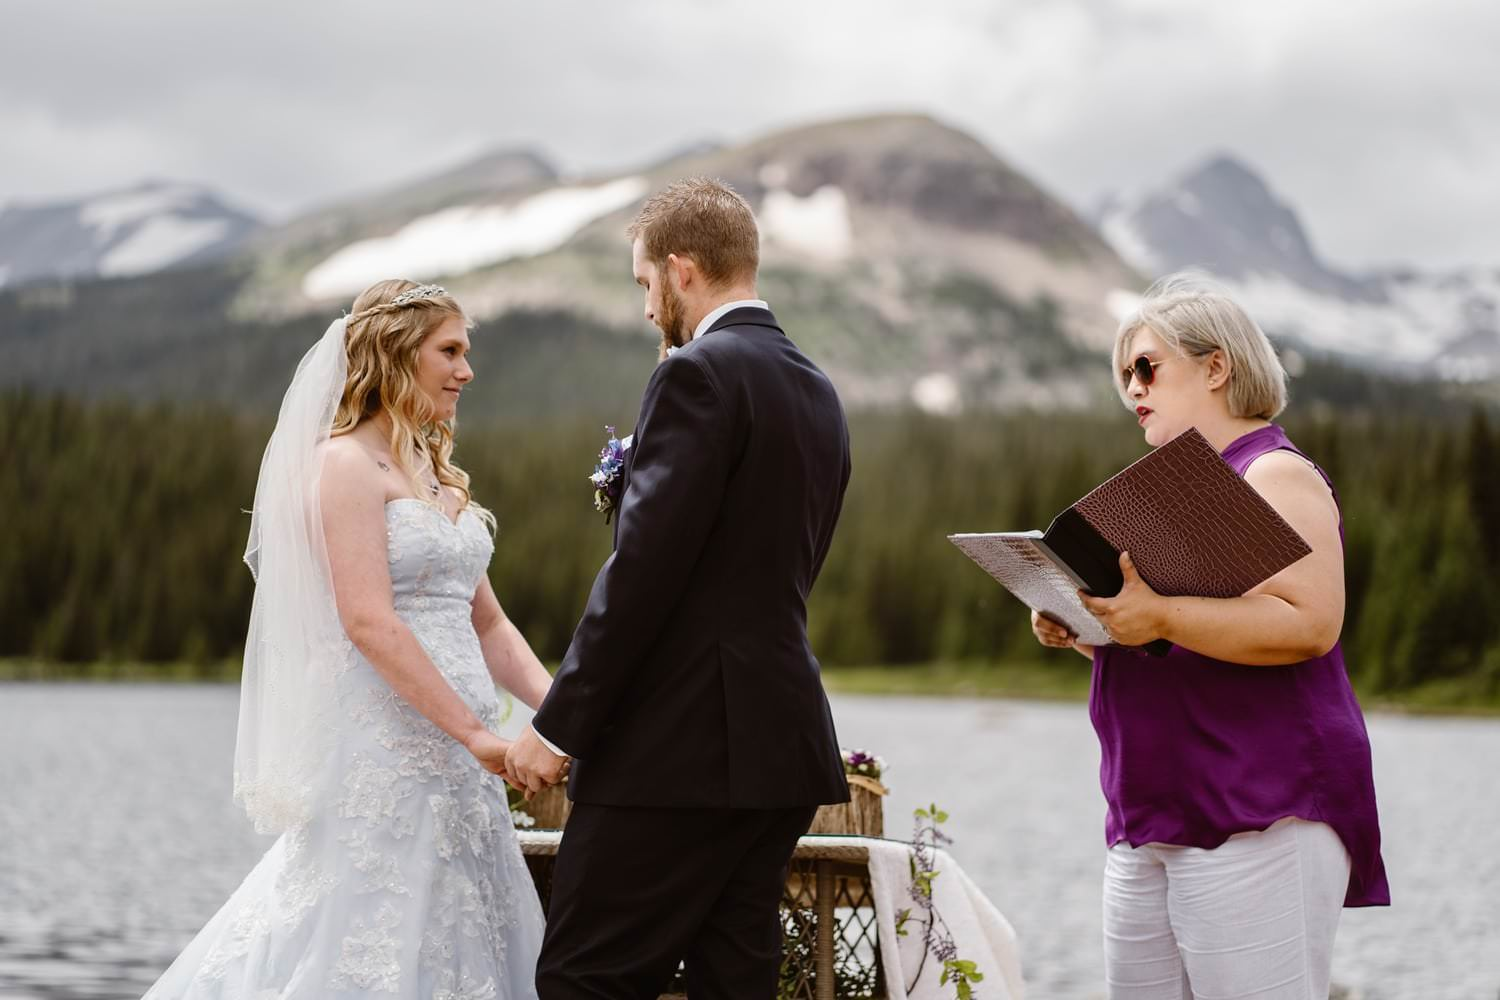 Bride and Groom at Vow Ceremony at  Colorado Adventure Elopement